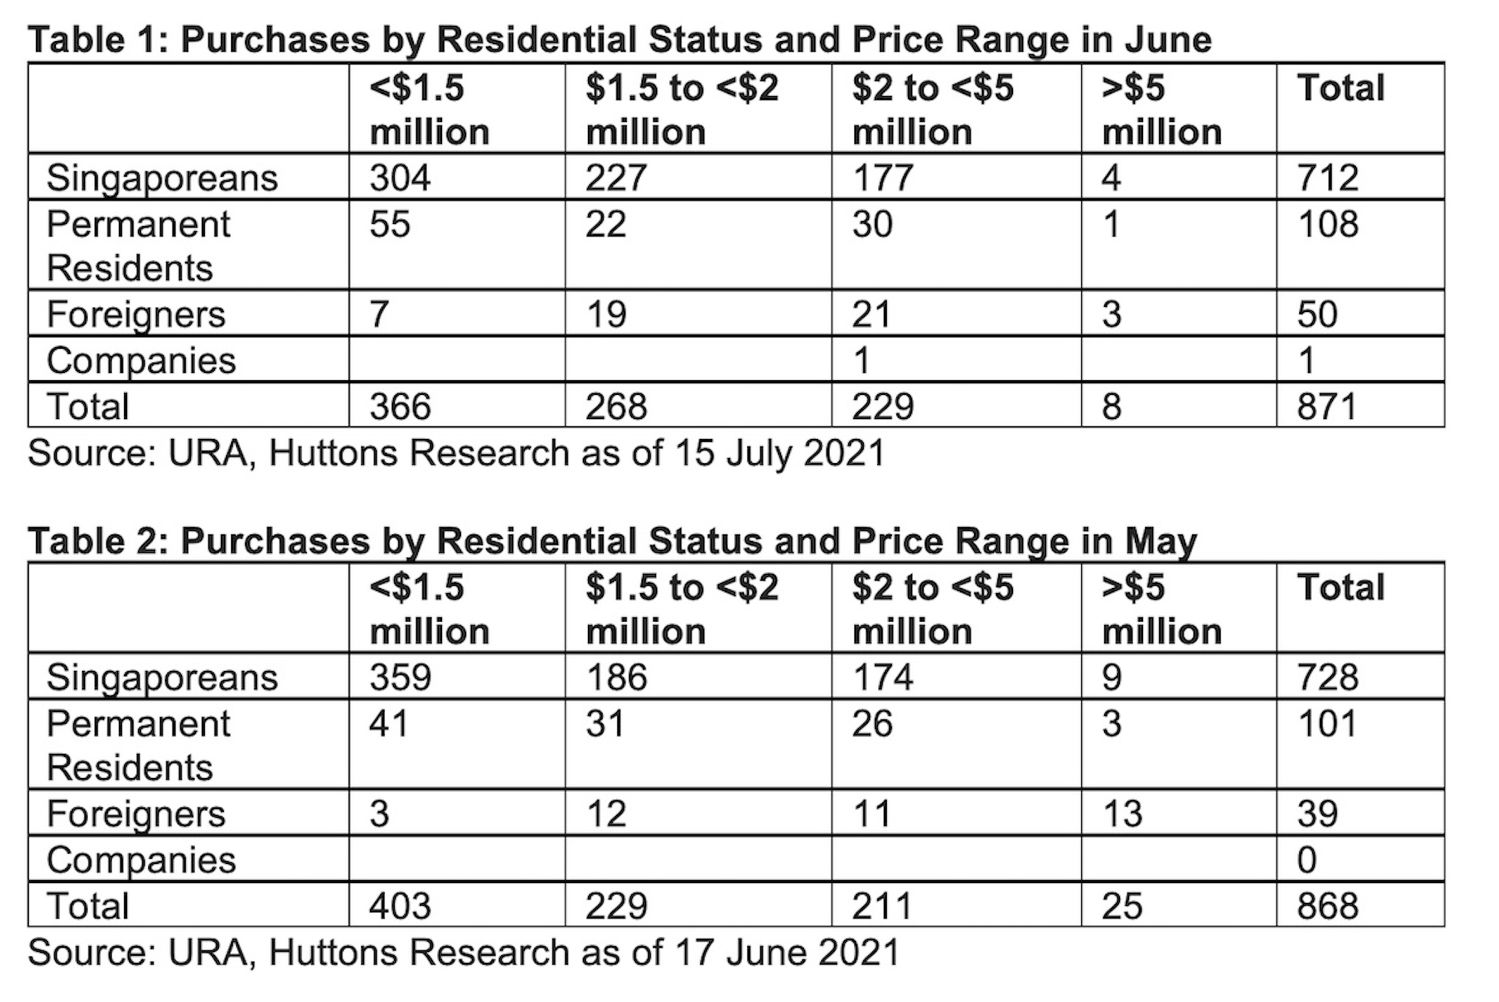 PURCHASES IN JUNE VS MAY - EDGEPROP SINGAPORE